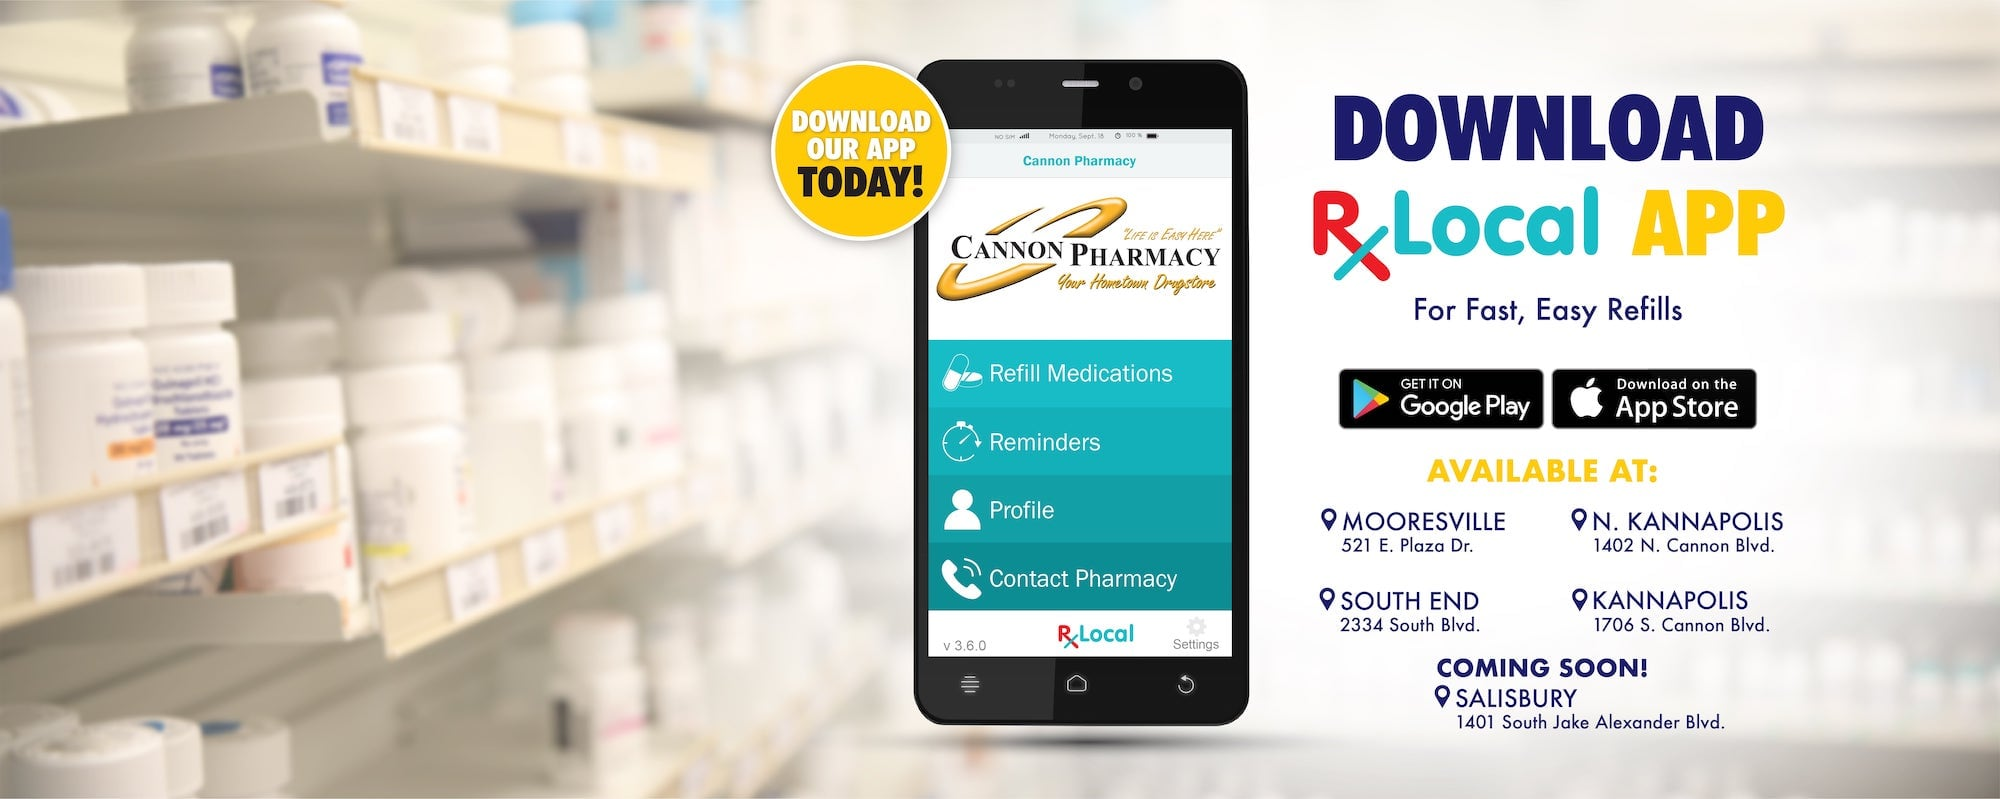 download rx local app